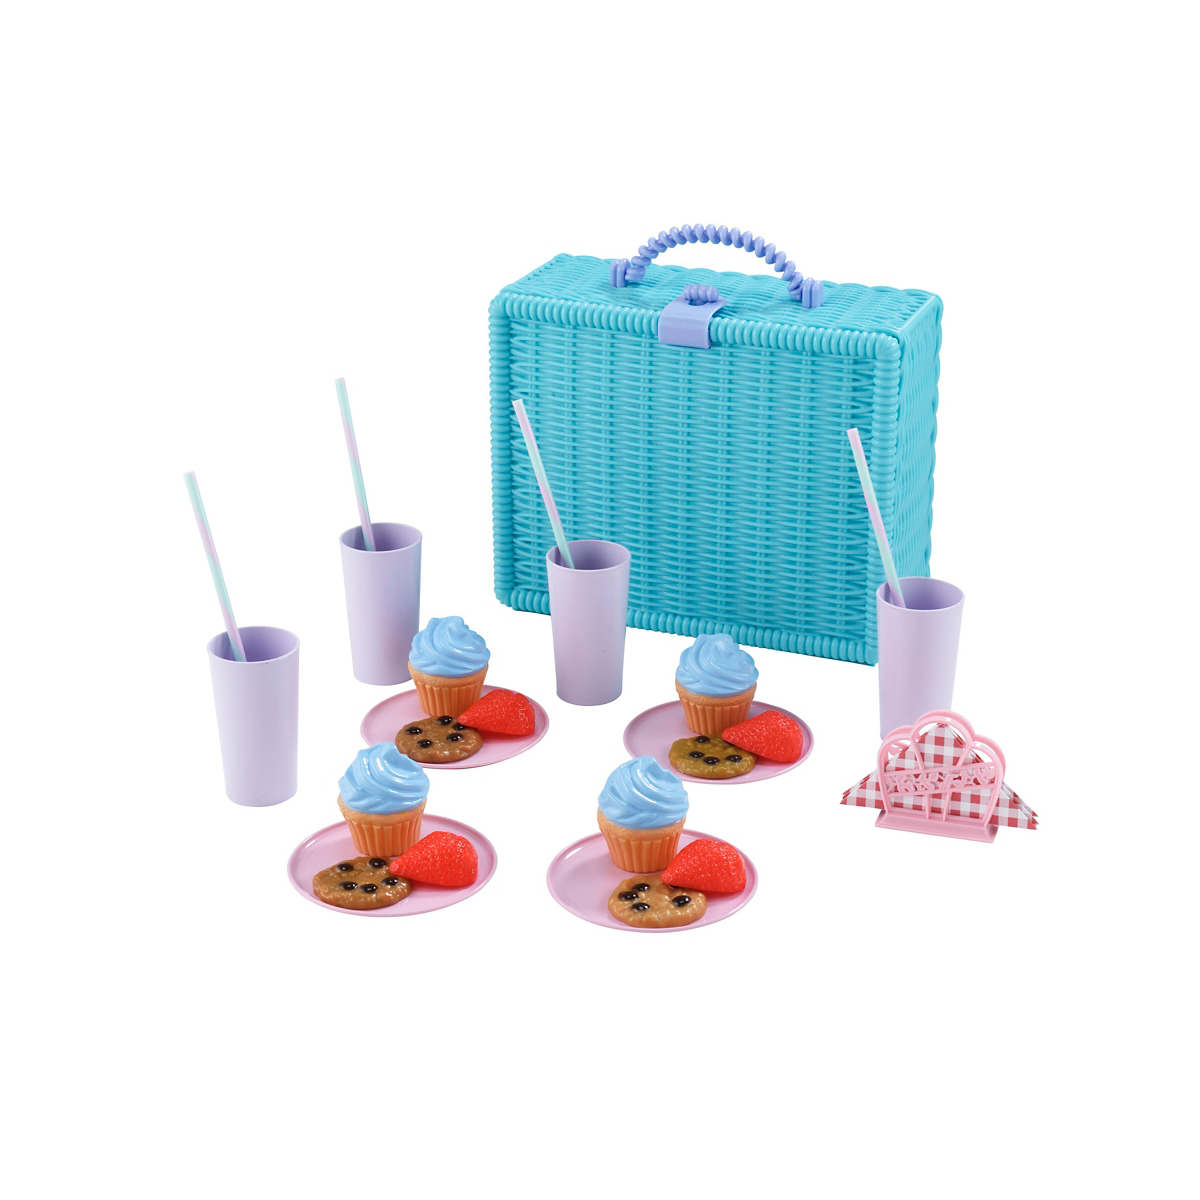 Early Learning Centre Picnic Hamper for 4 from Early Learning Center